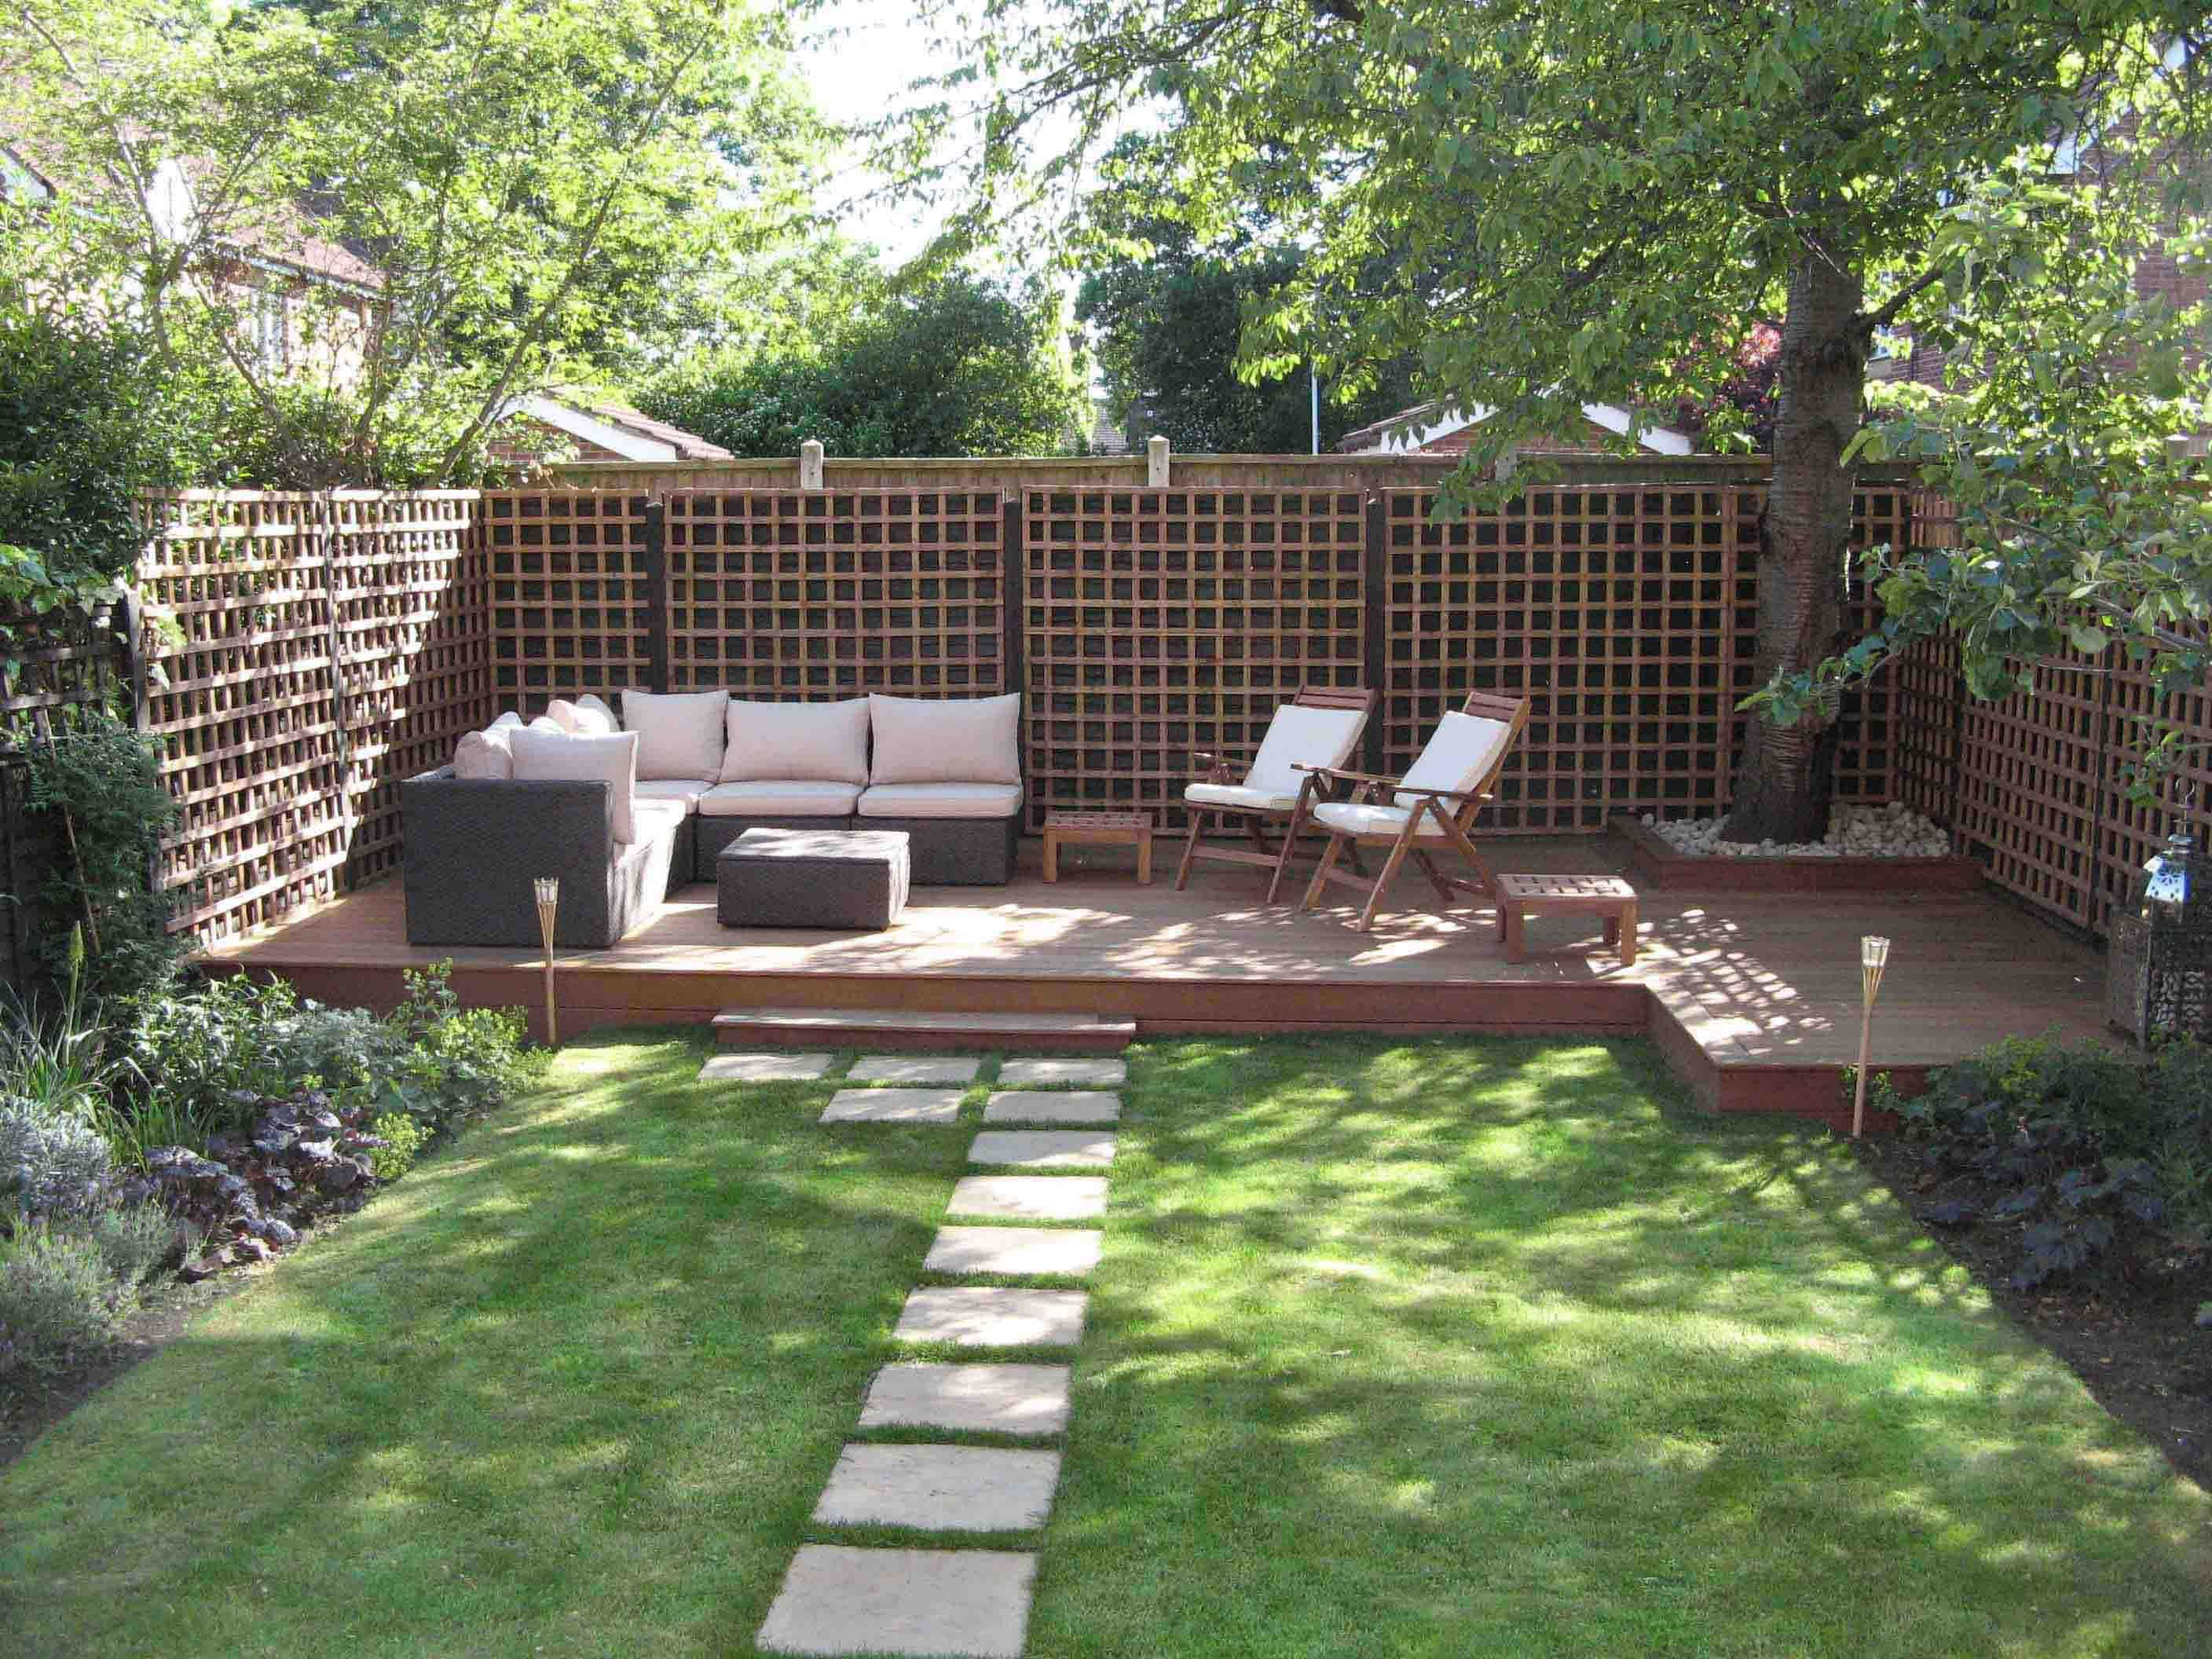 Back Garden Ideas 25 Landscape Design For Small Spaces Garden Ideas Small